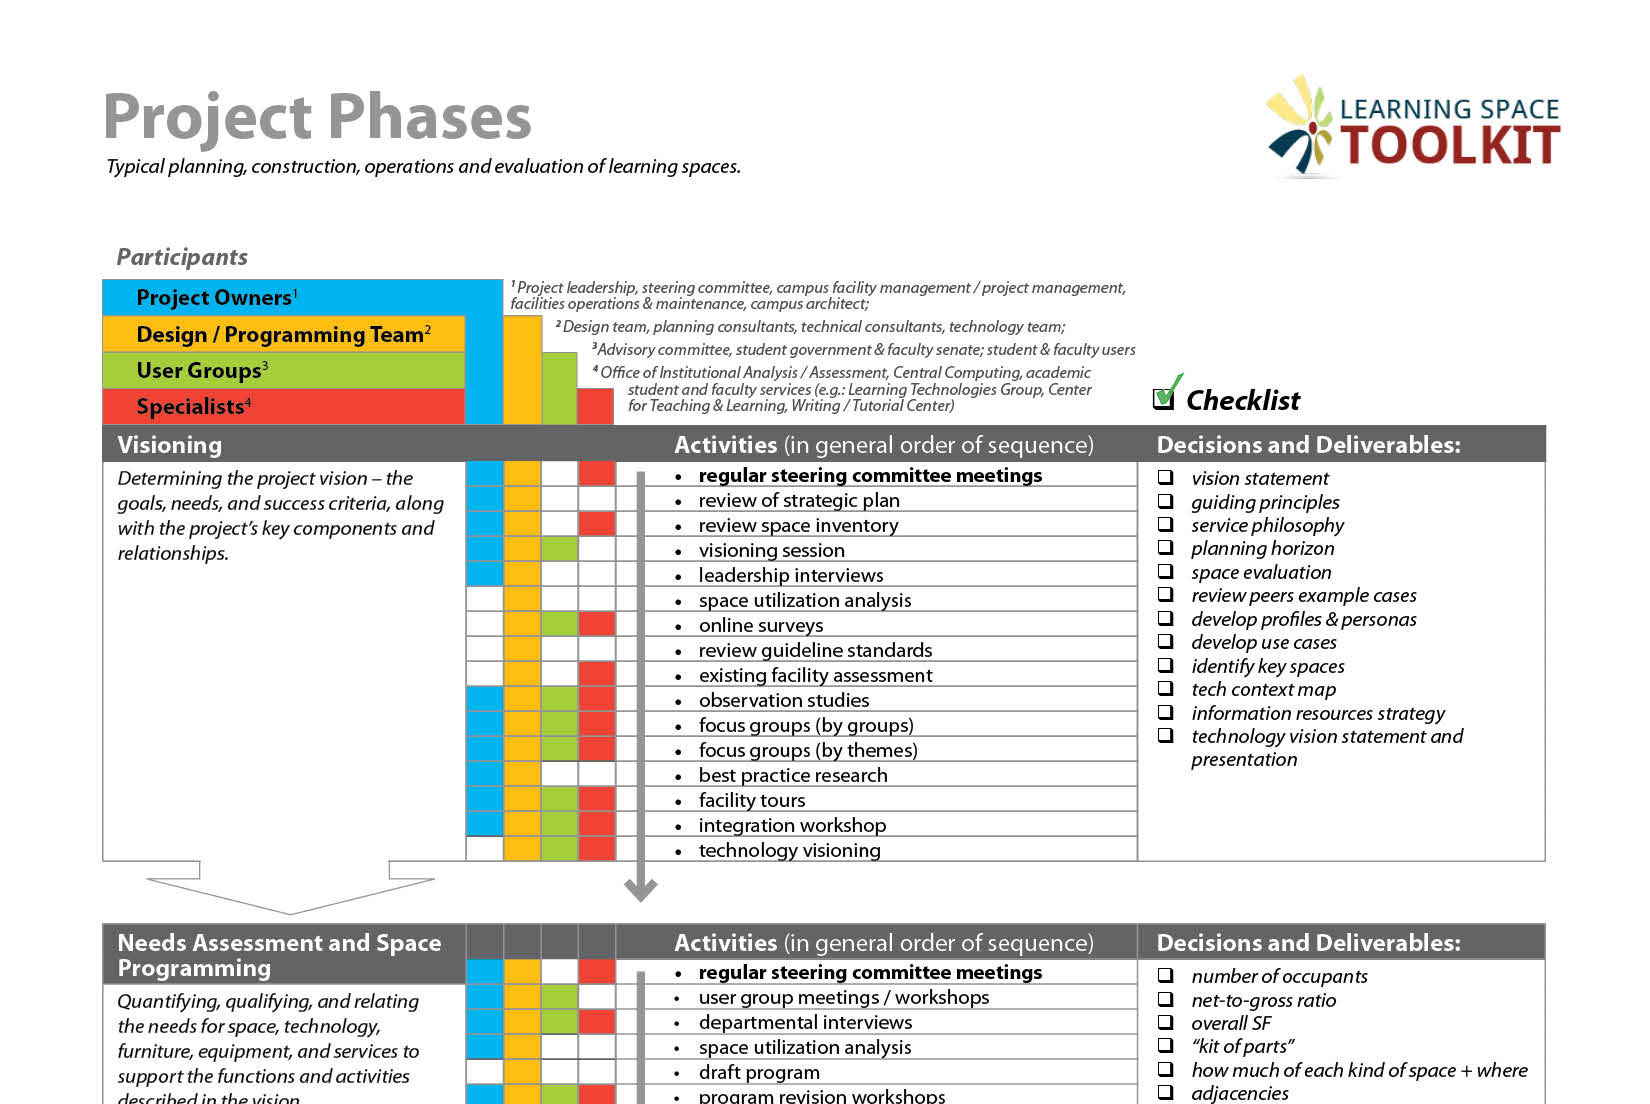 Project Phases Learning Space Toolkit